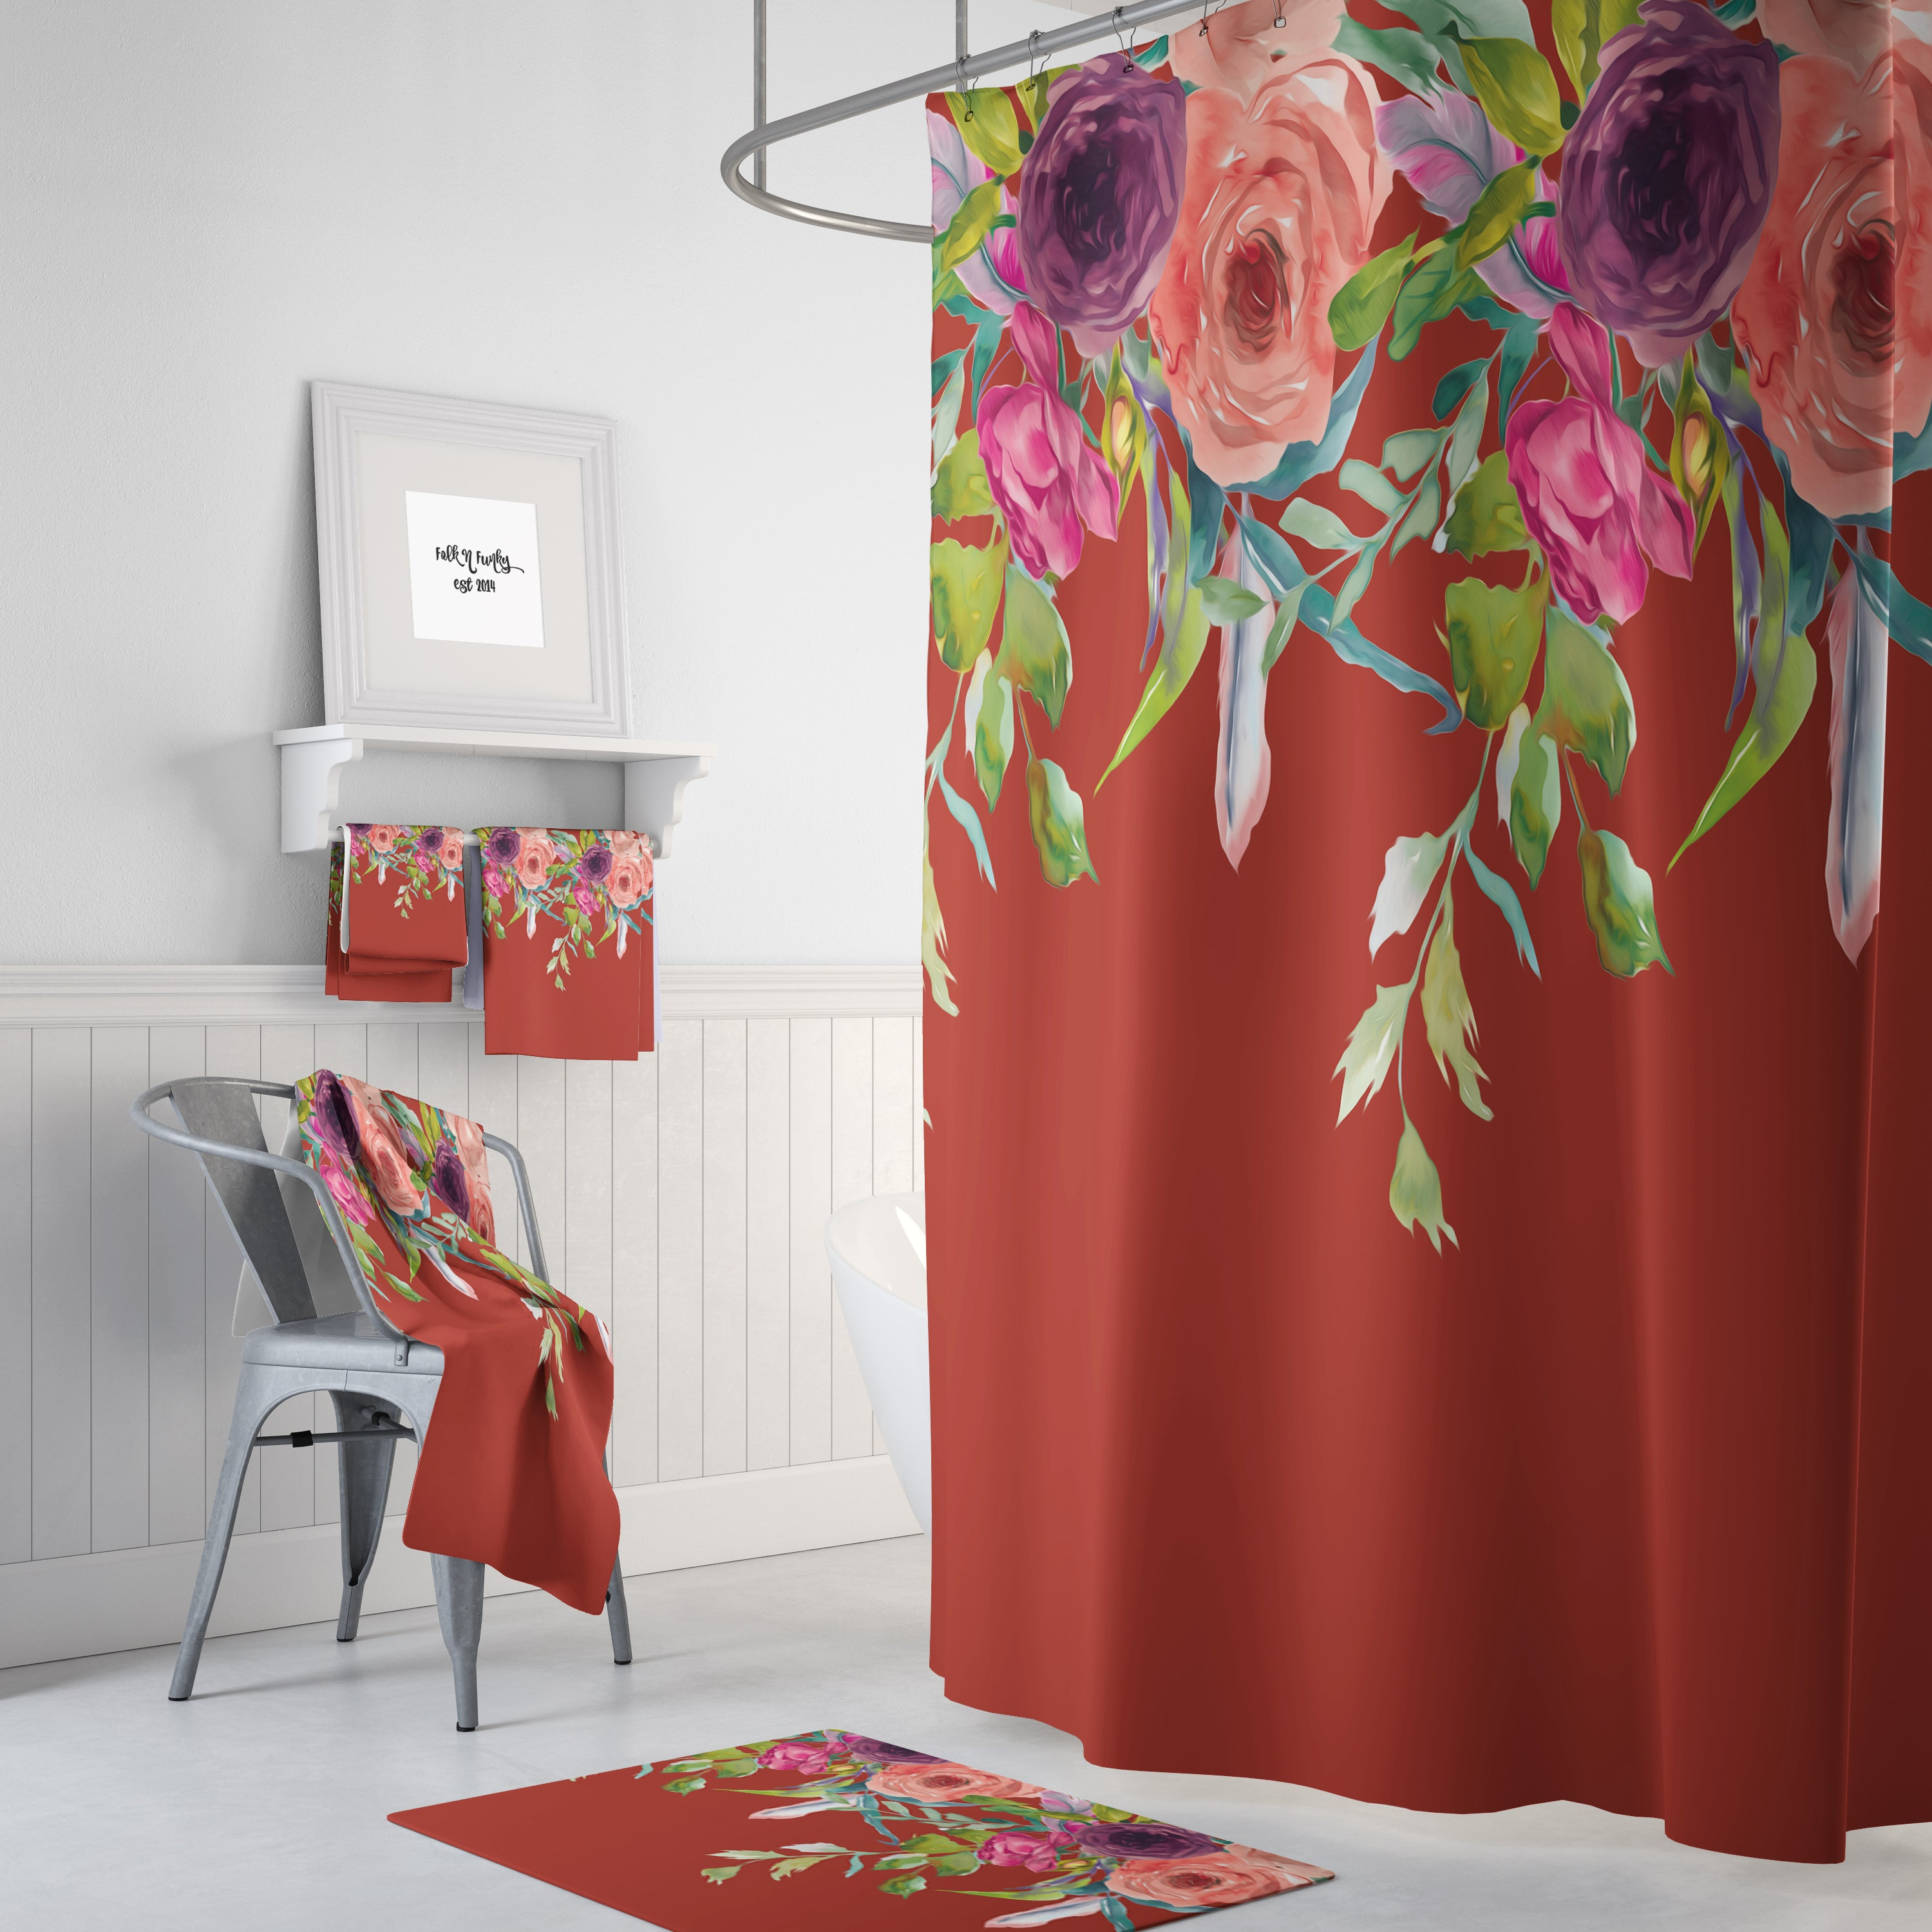 Gypsy Floral Shower Curtain, Optional Bath Mat, Towels